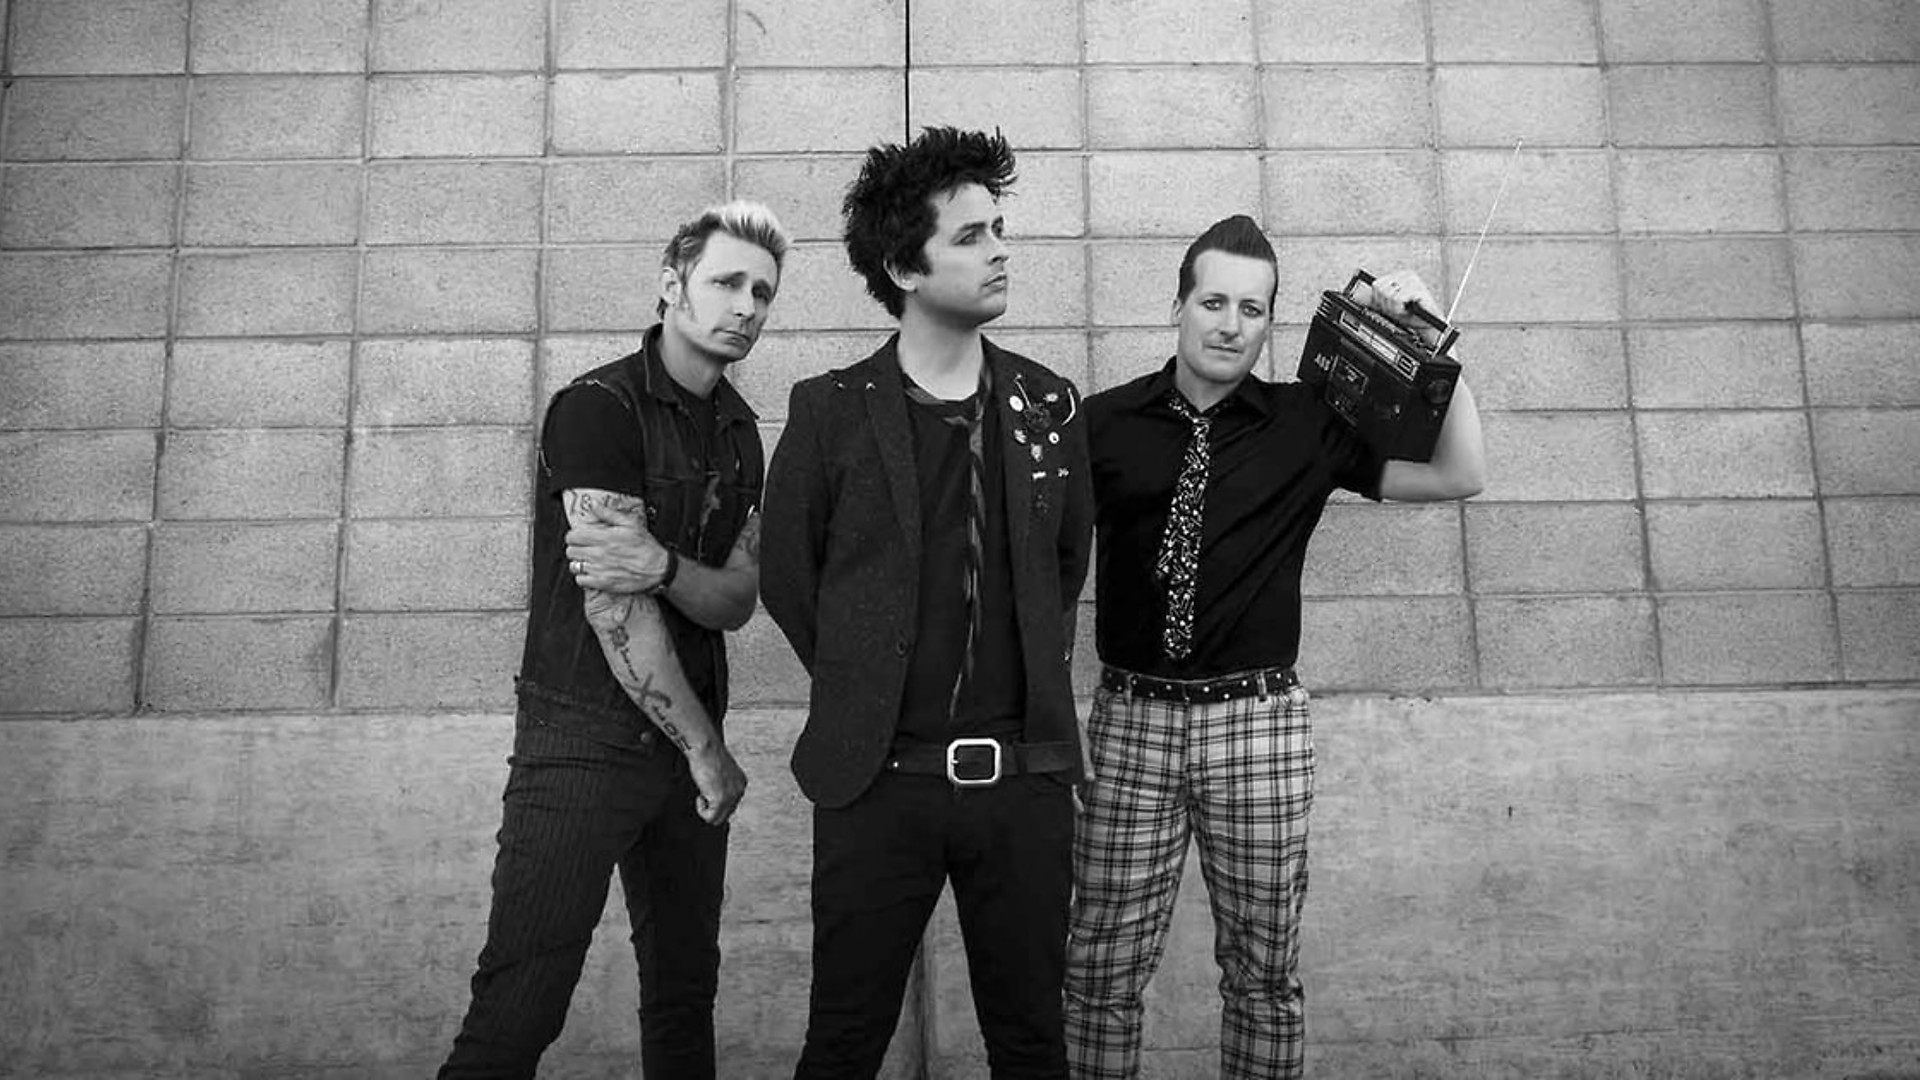 Green Day Wallpaper for pc